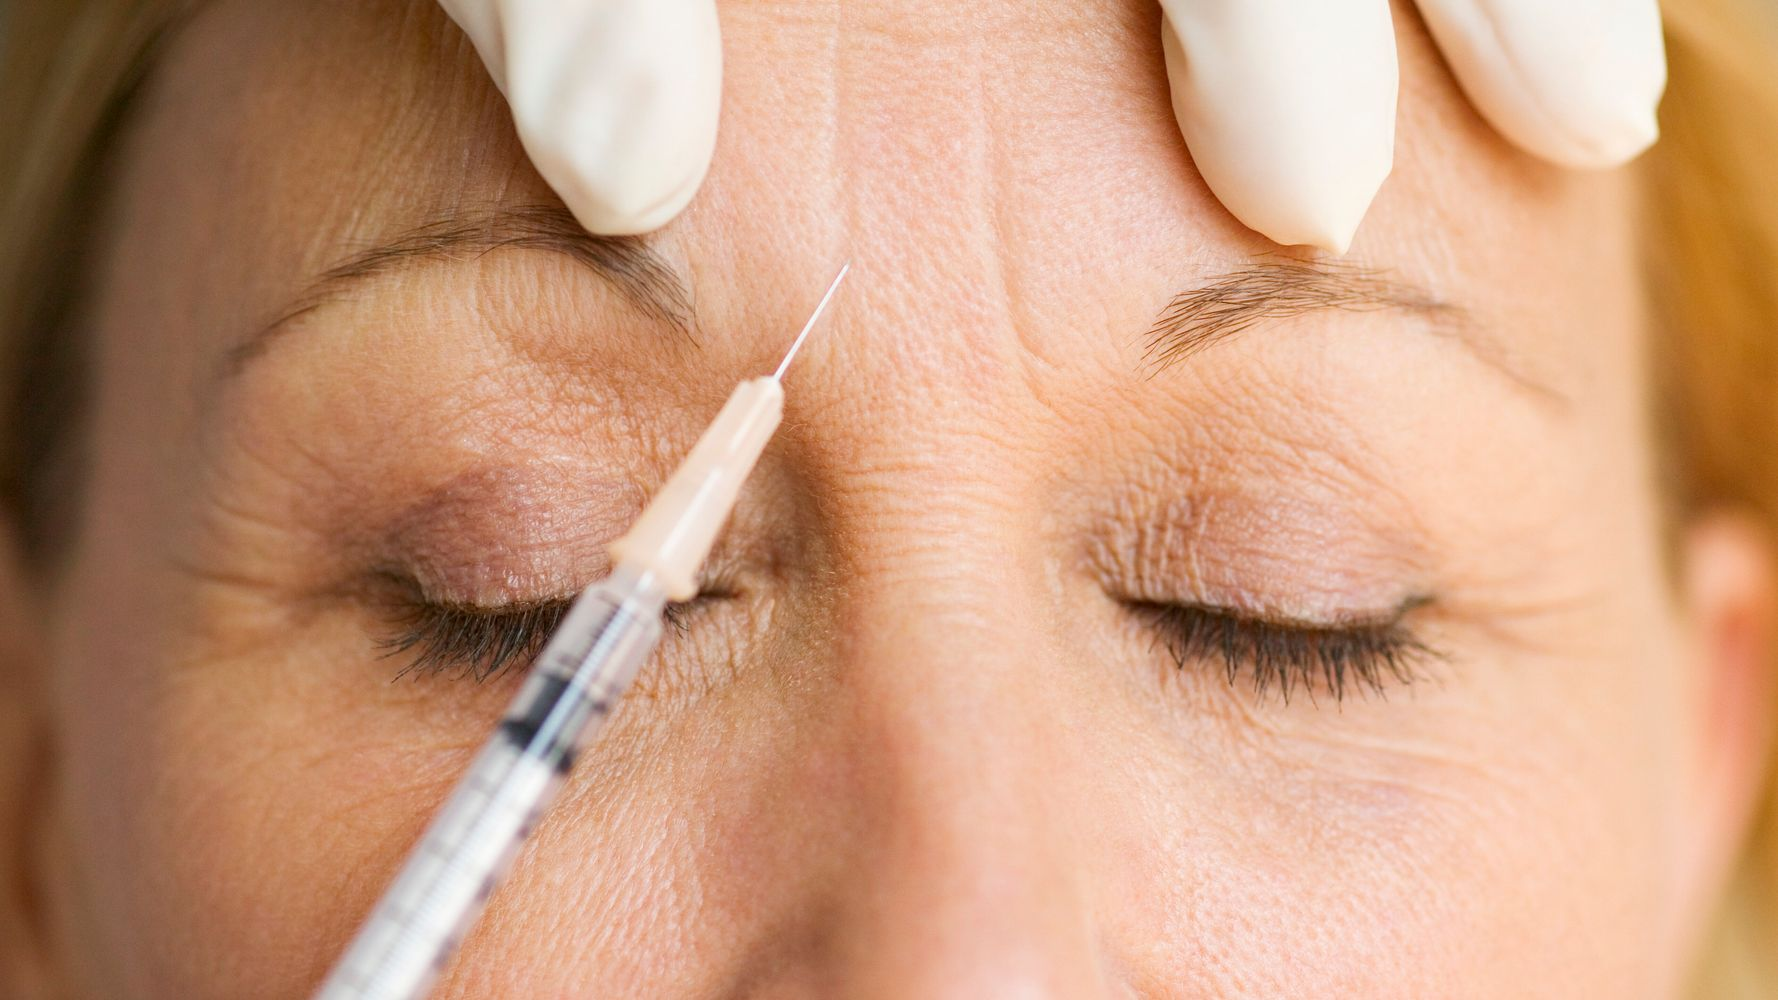 What Experts Say You Should Know About Getting Botox For The First Time